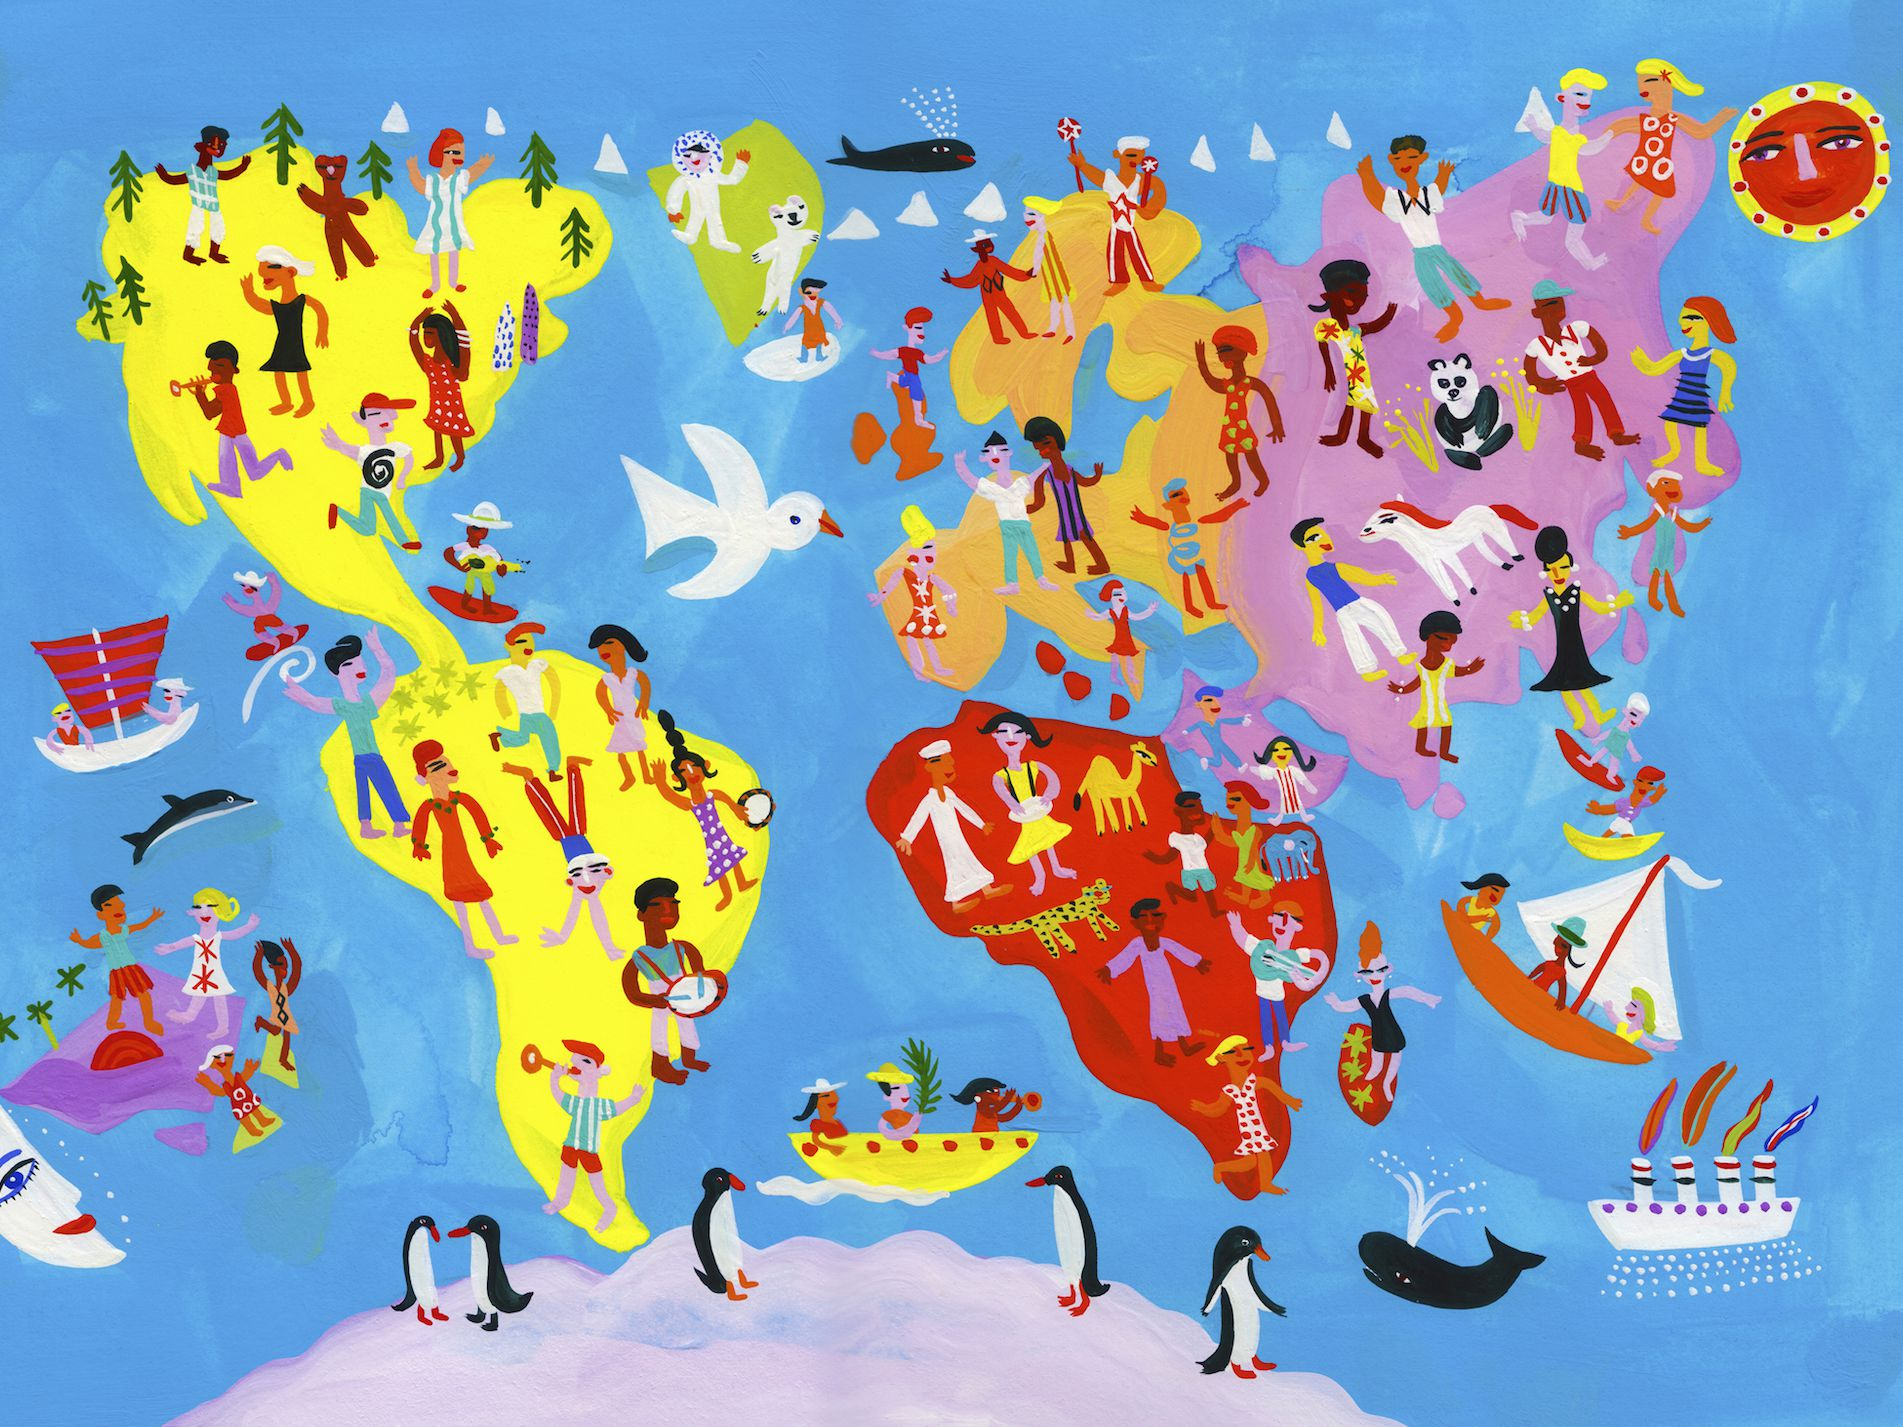 The Practice of Social influence in Multiple Cultures